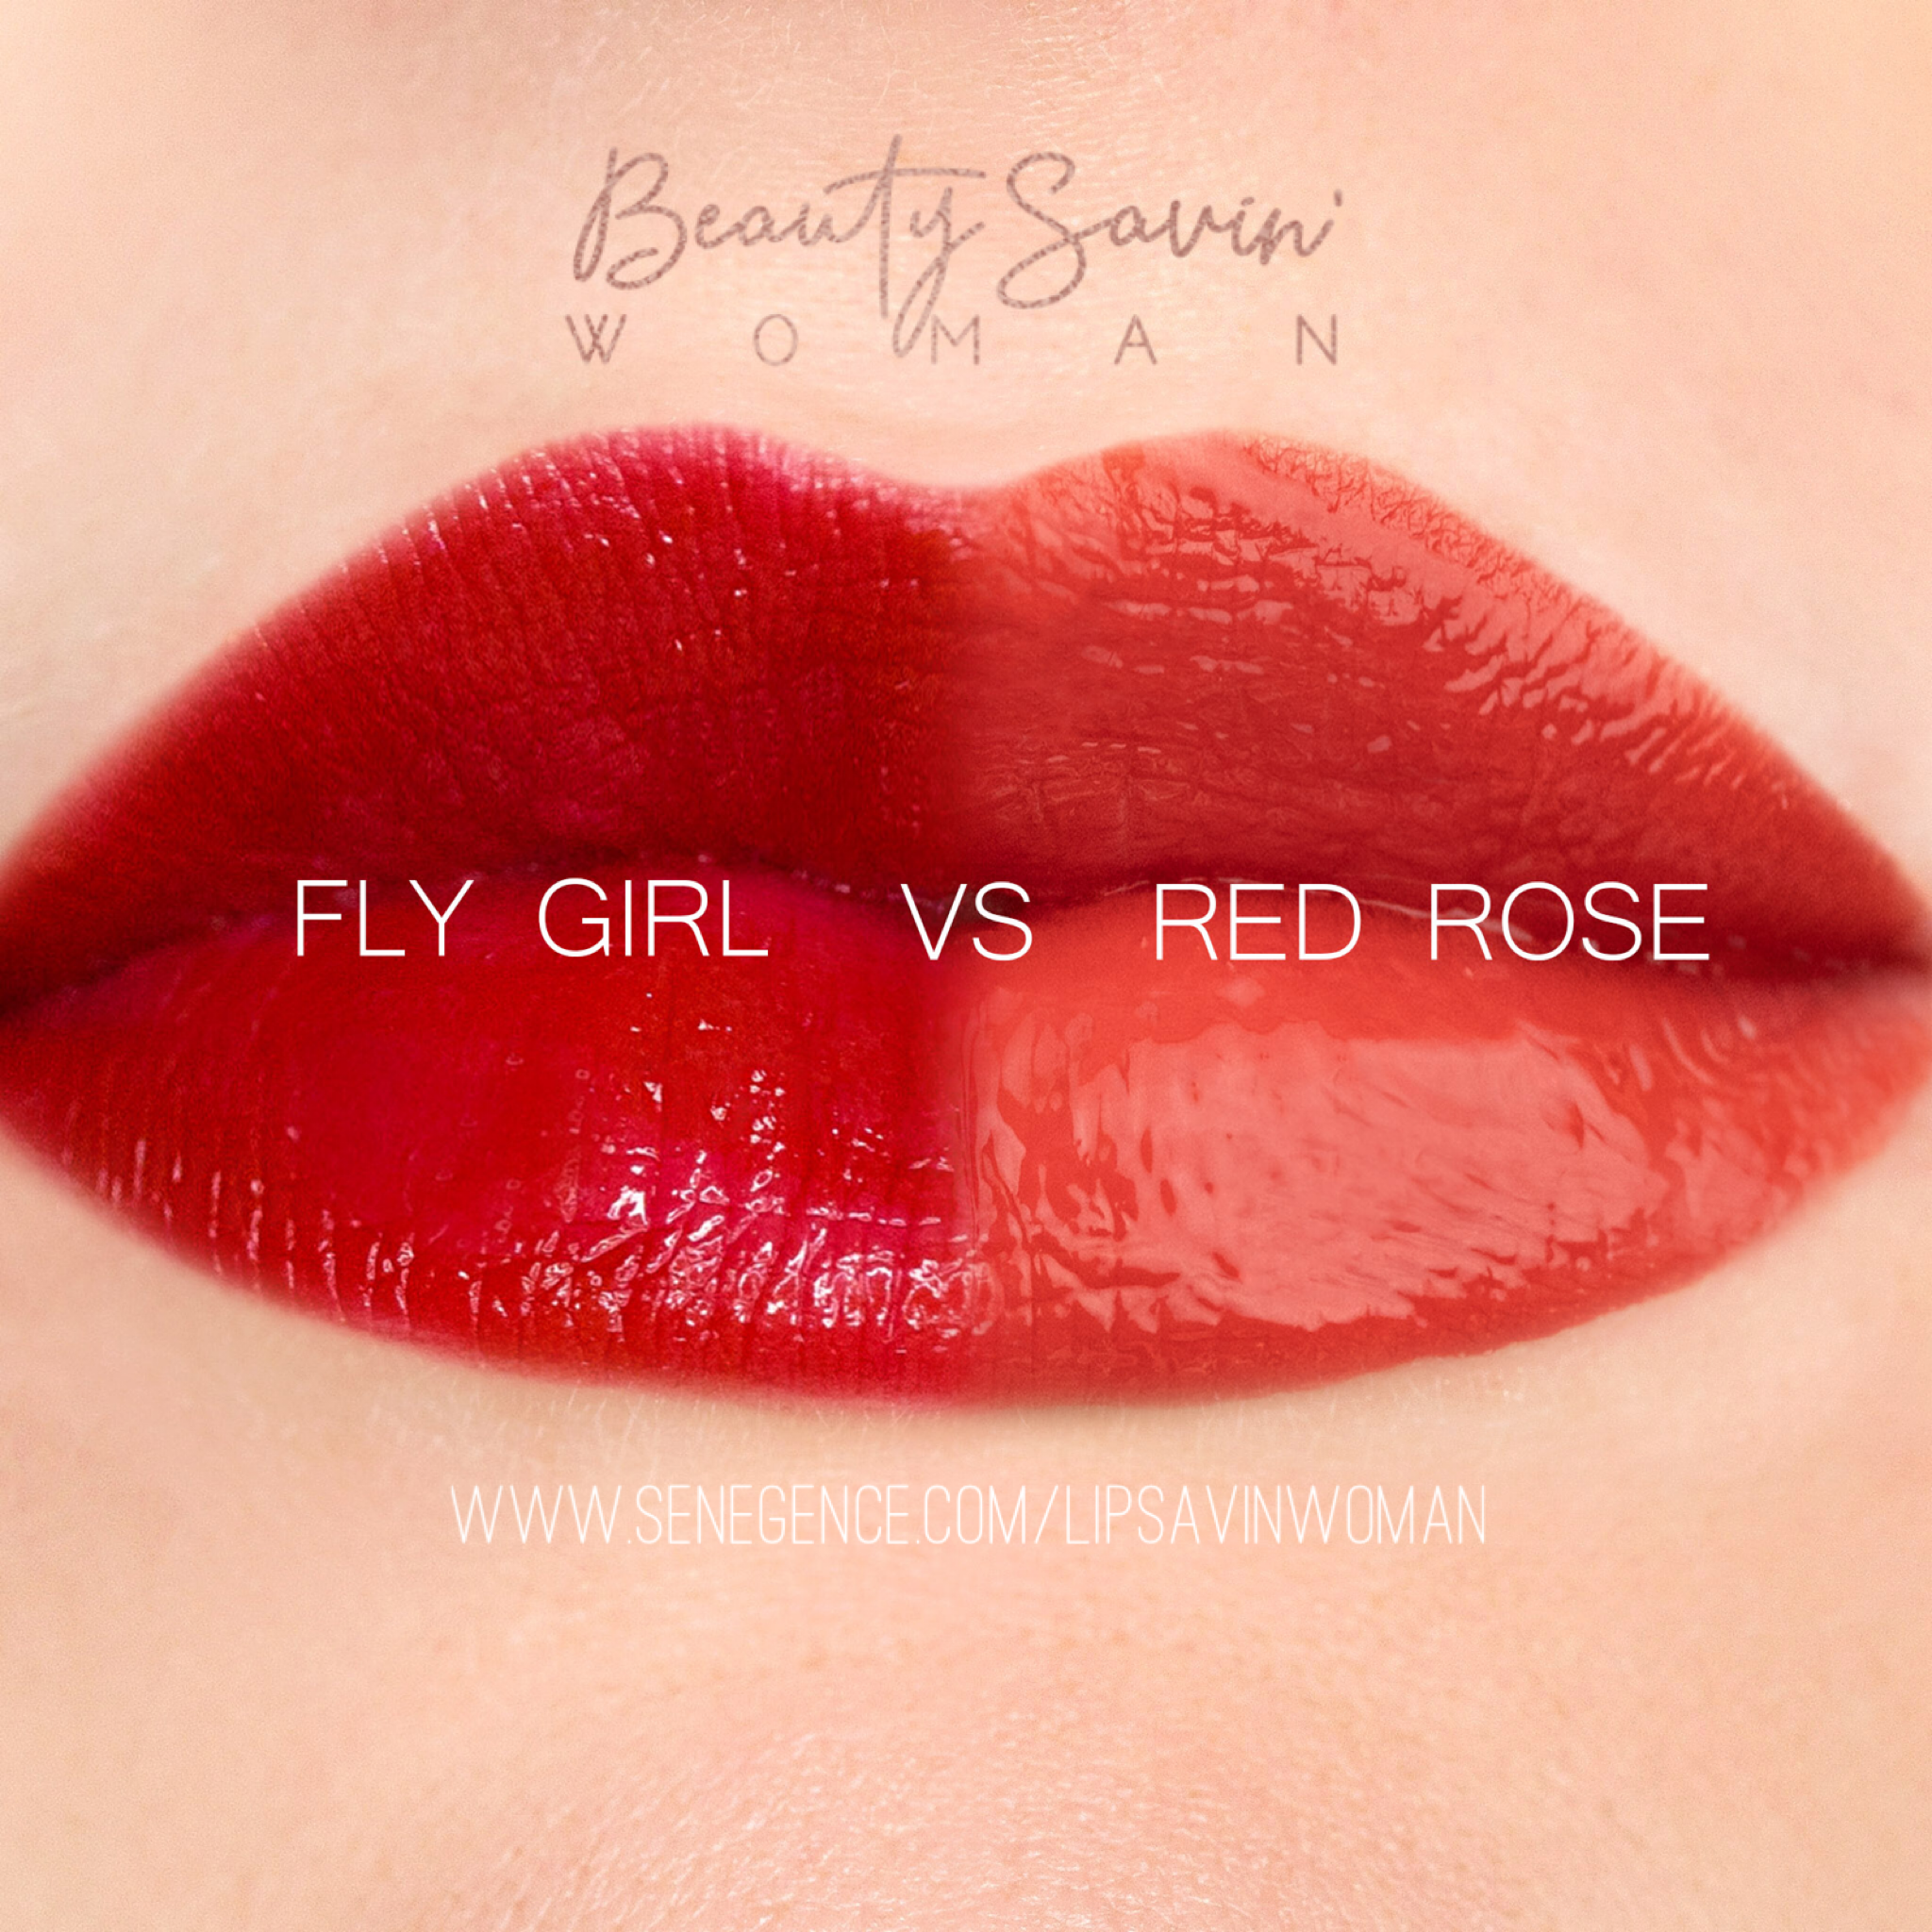 Red Rose LipSense is a limited edition in 2020 Red roses